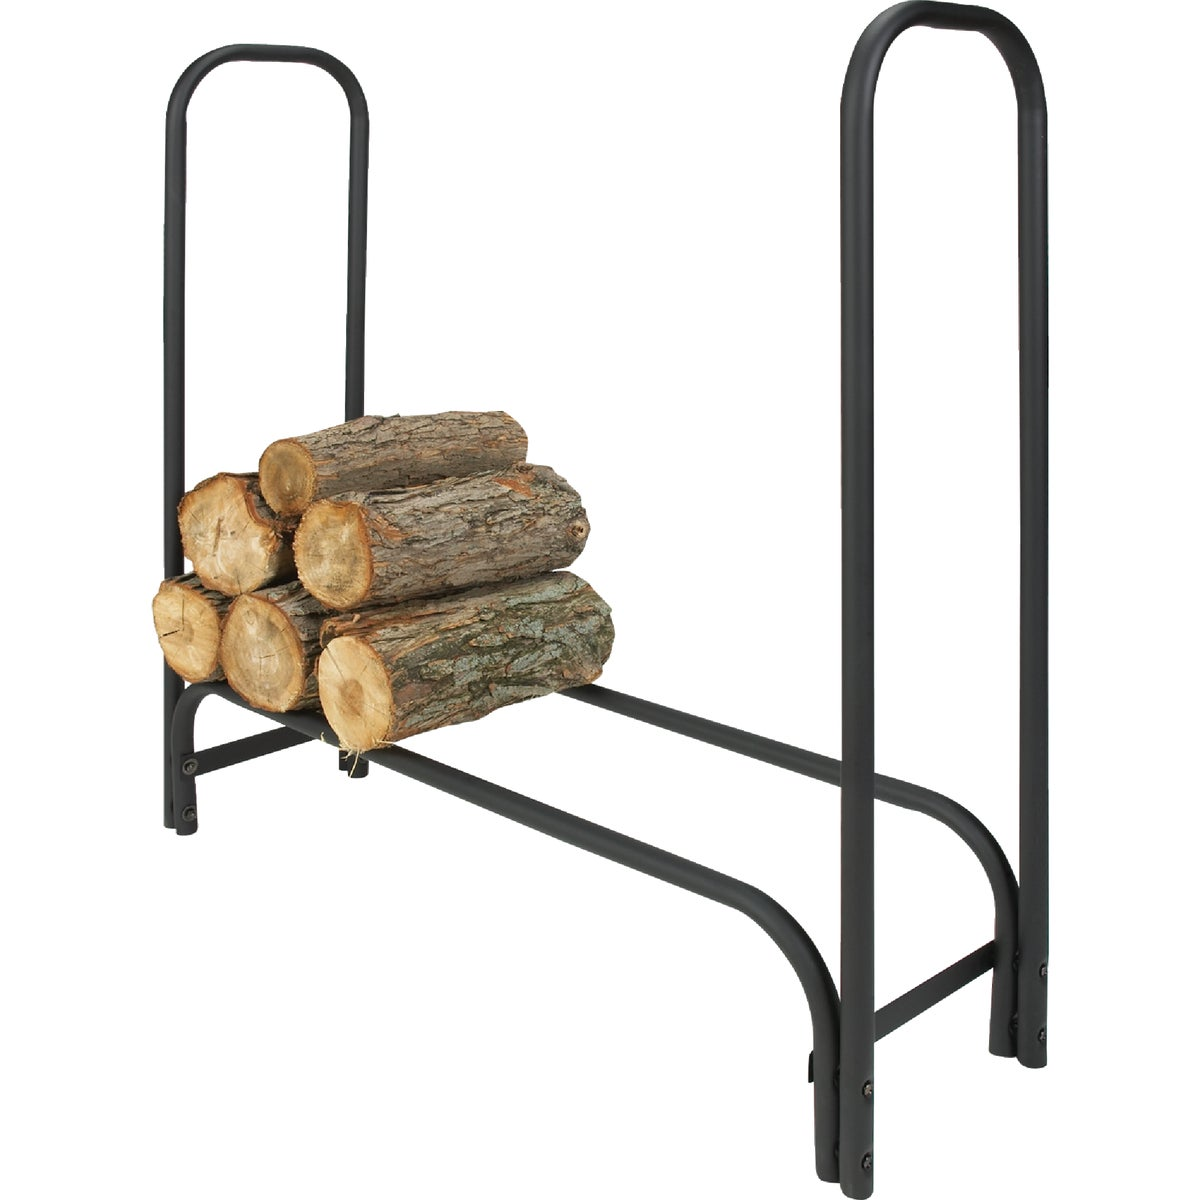 BLACK TUBE 8' LOG RACK - FL0011CT by Do it Best